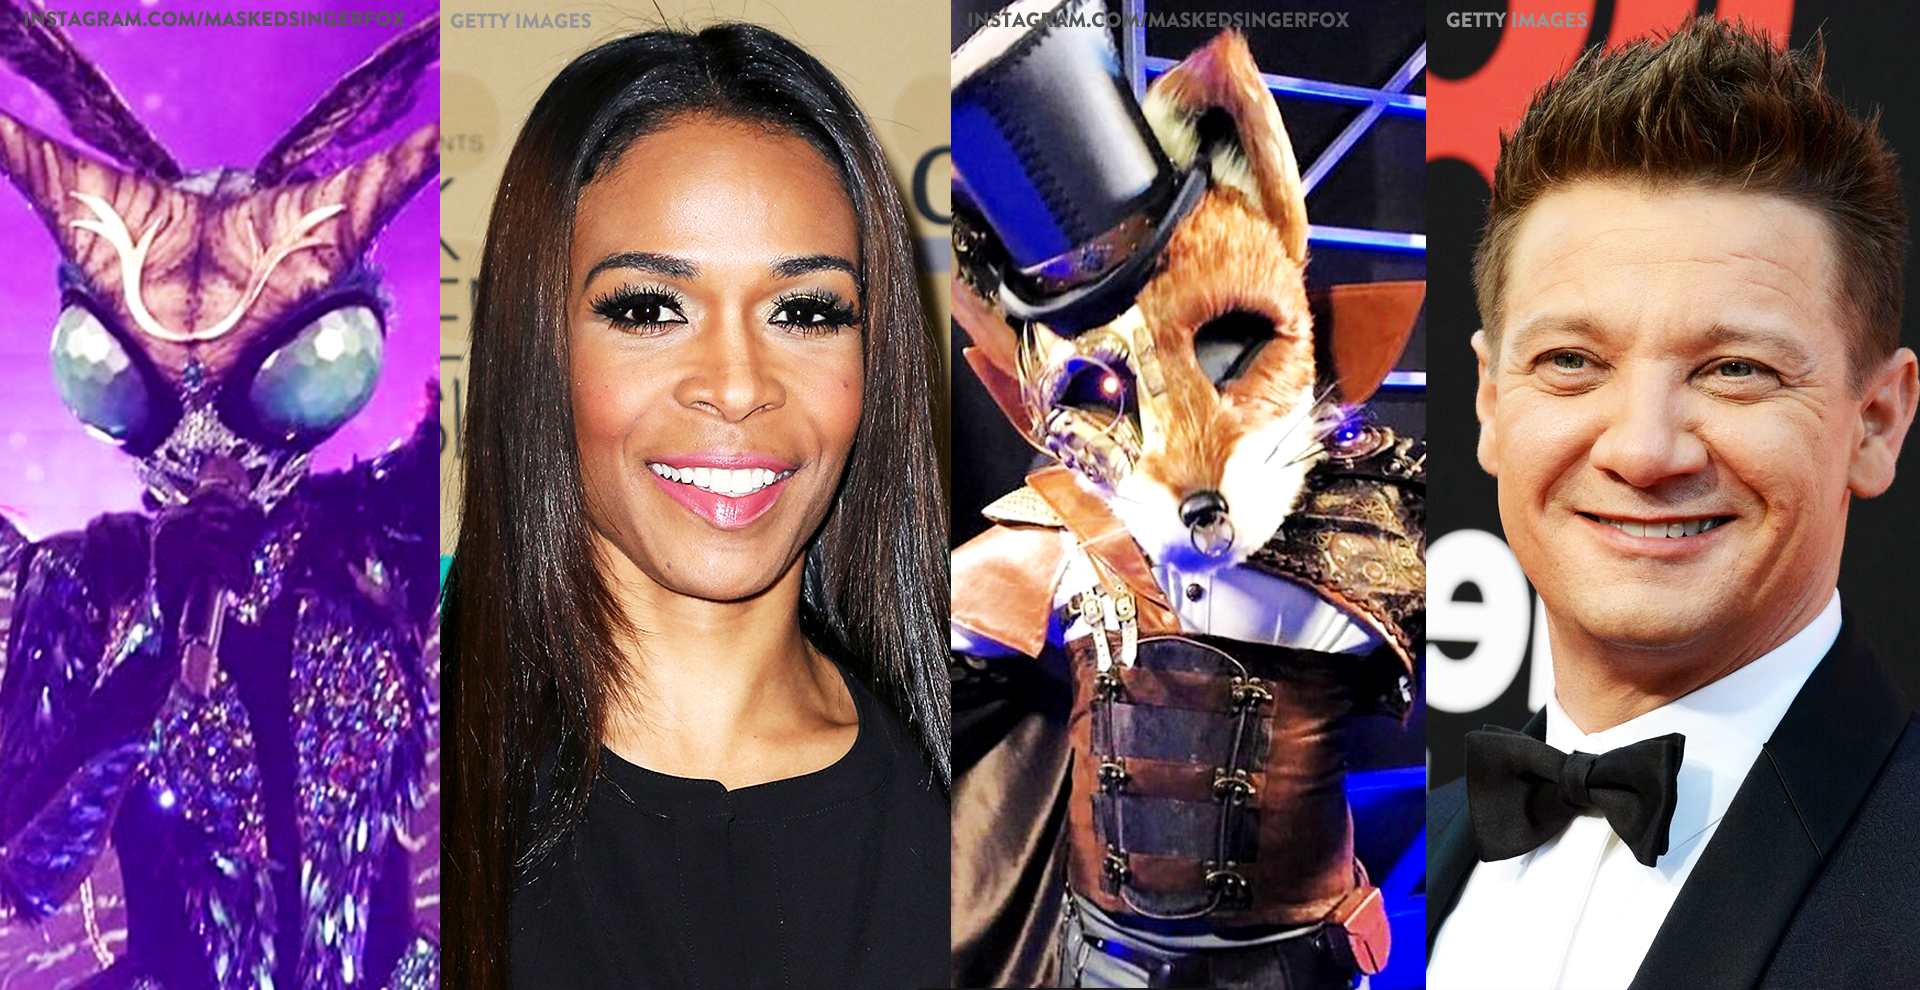 The Masked Singer: Fan Theories